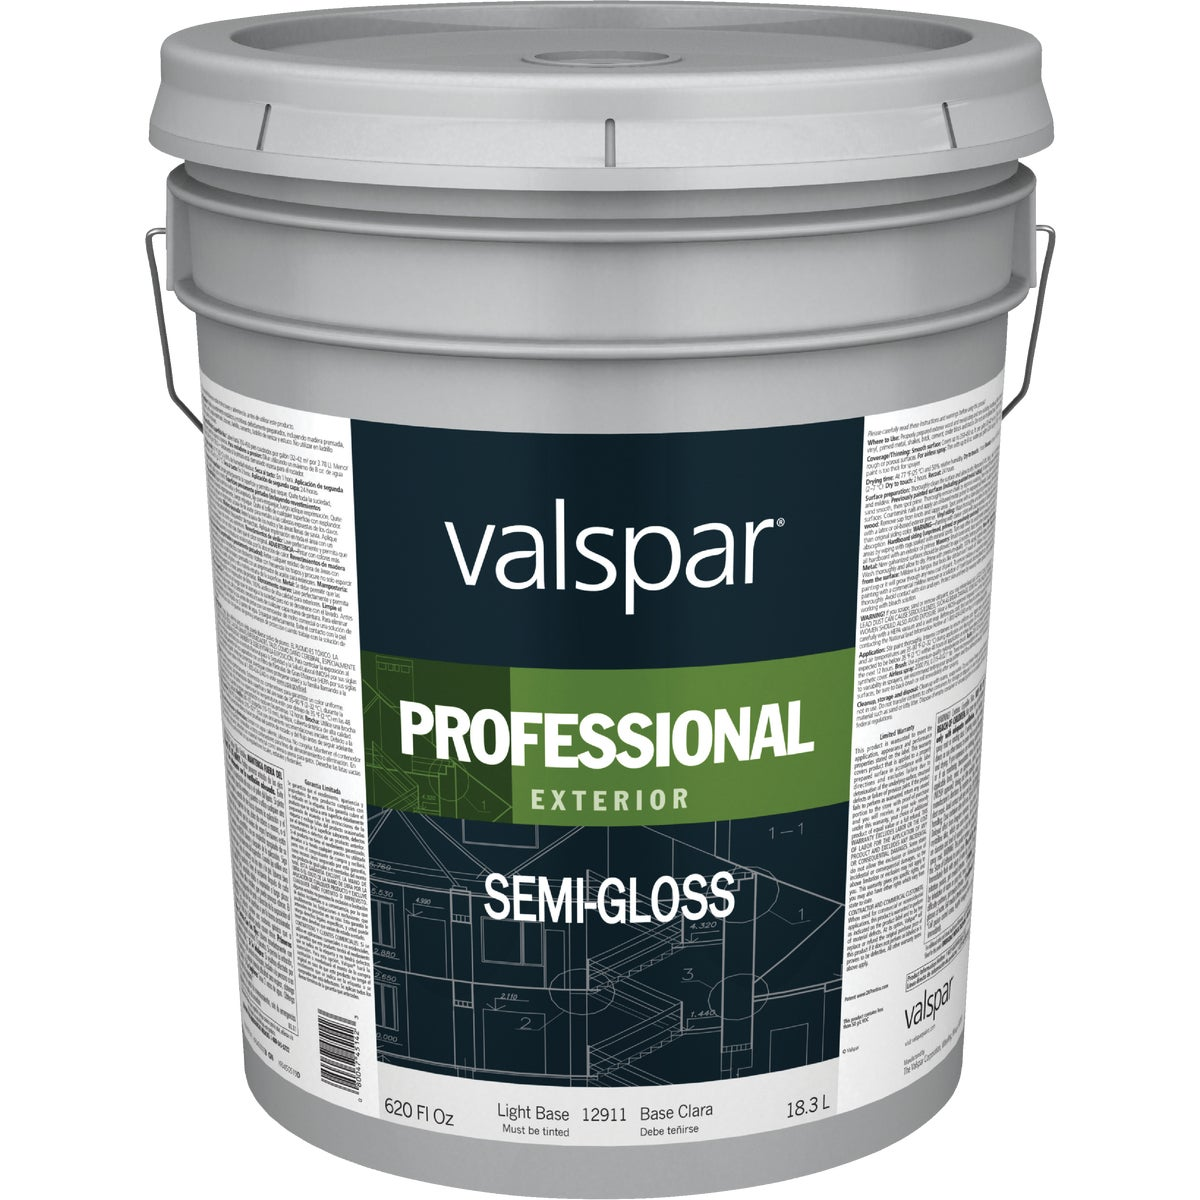 EXT S/G LIGHT BASE PAINT - 045.0012911.008 by Valspar Corp